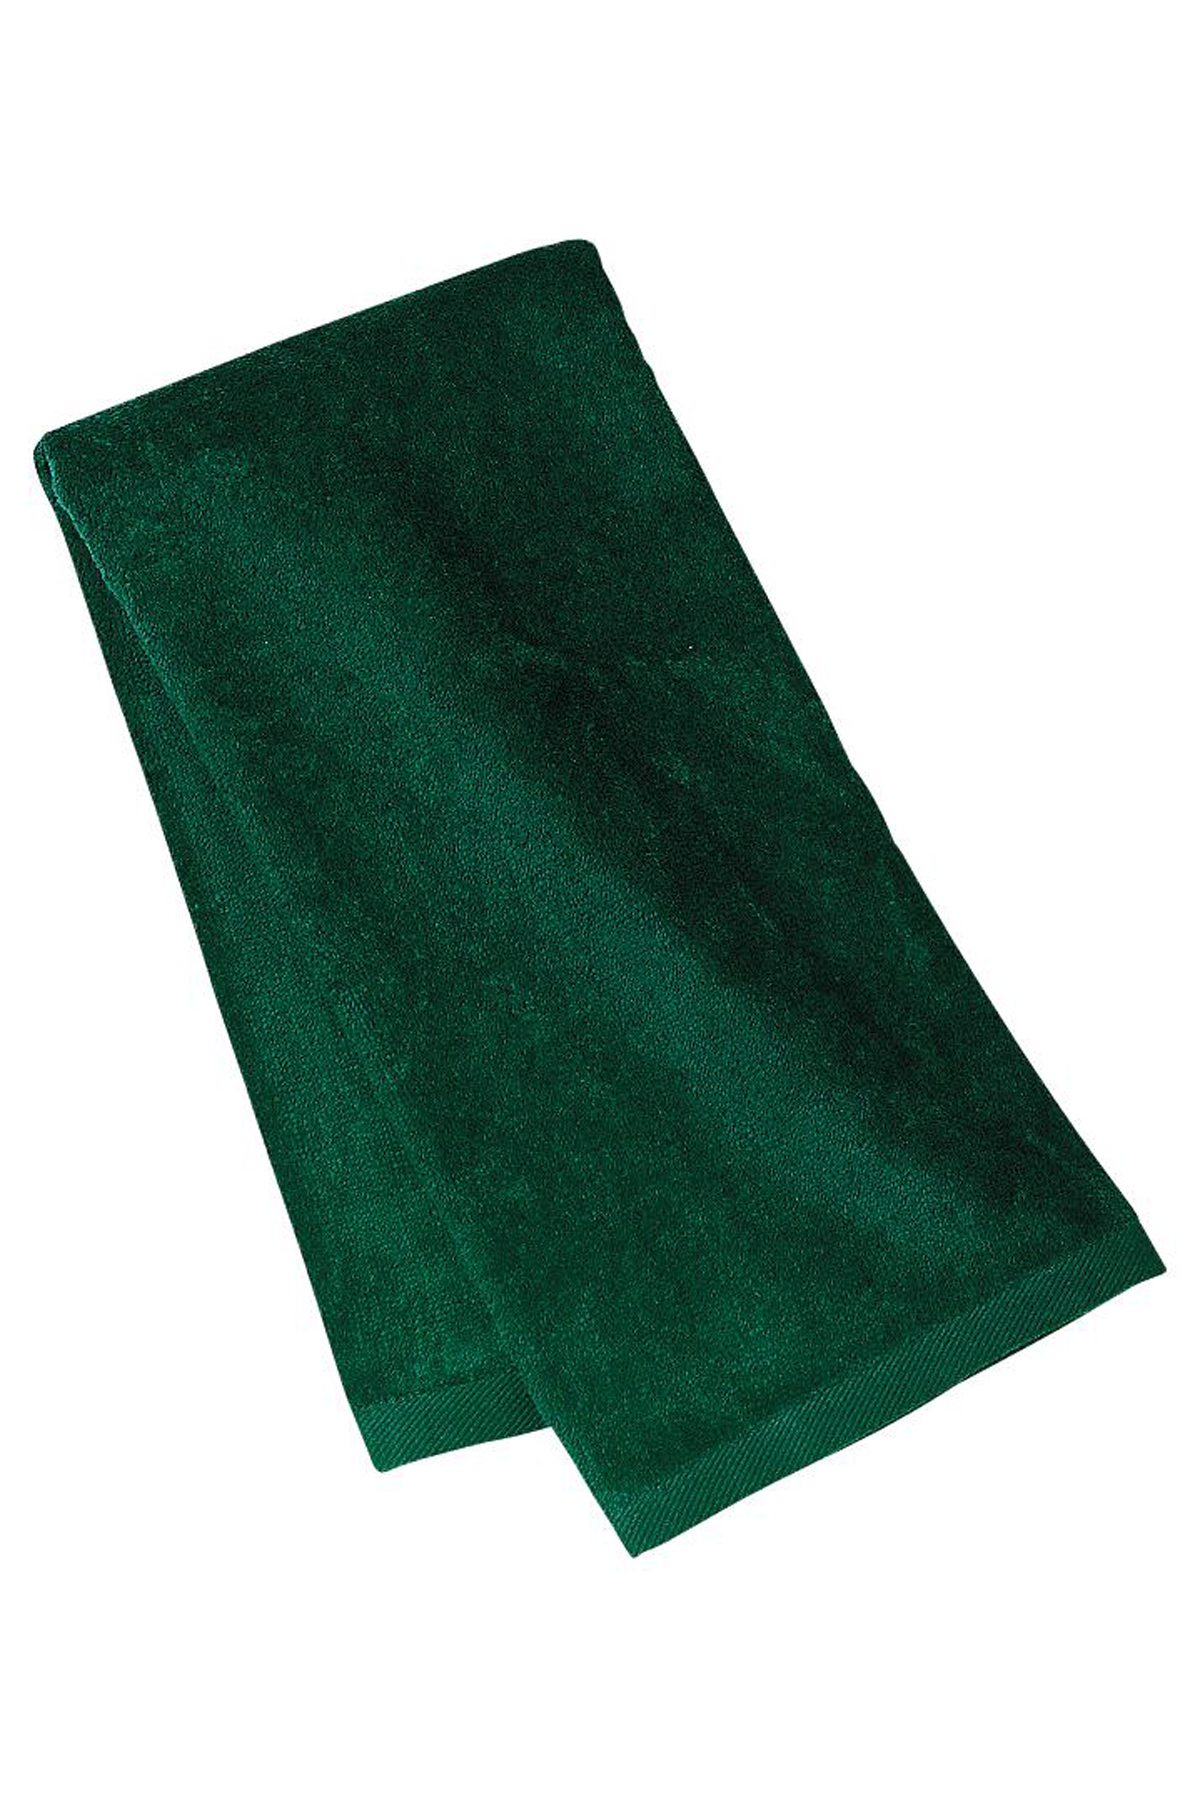 Accessories-Golf-Towels-6